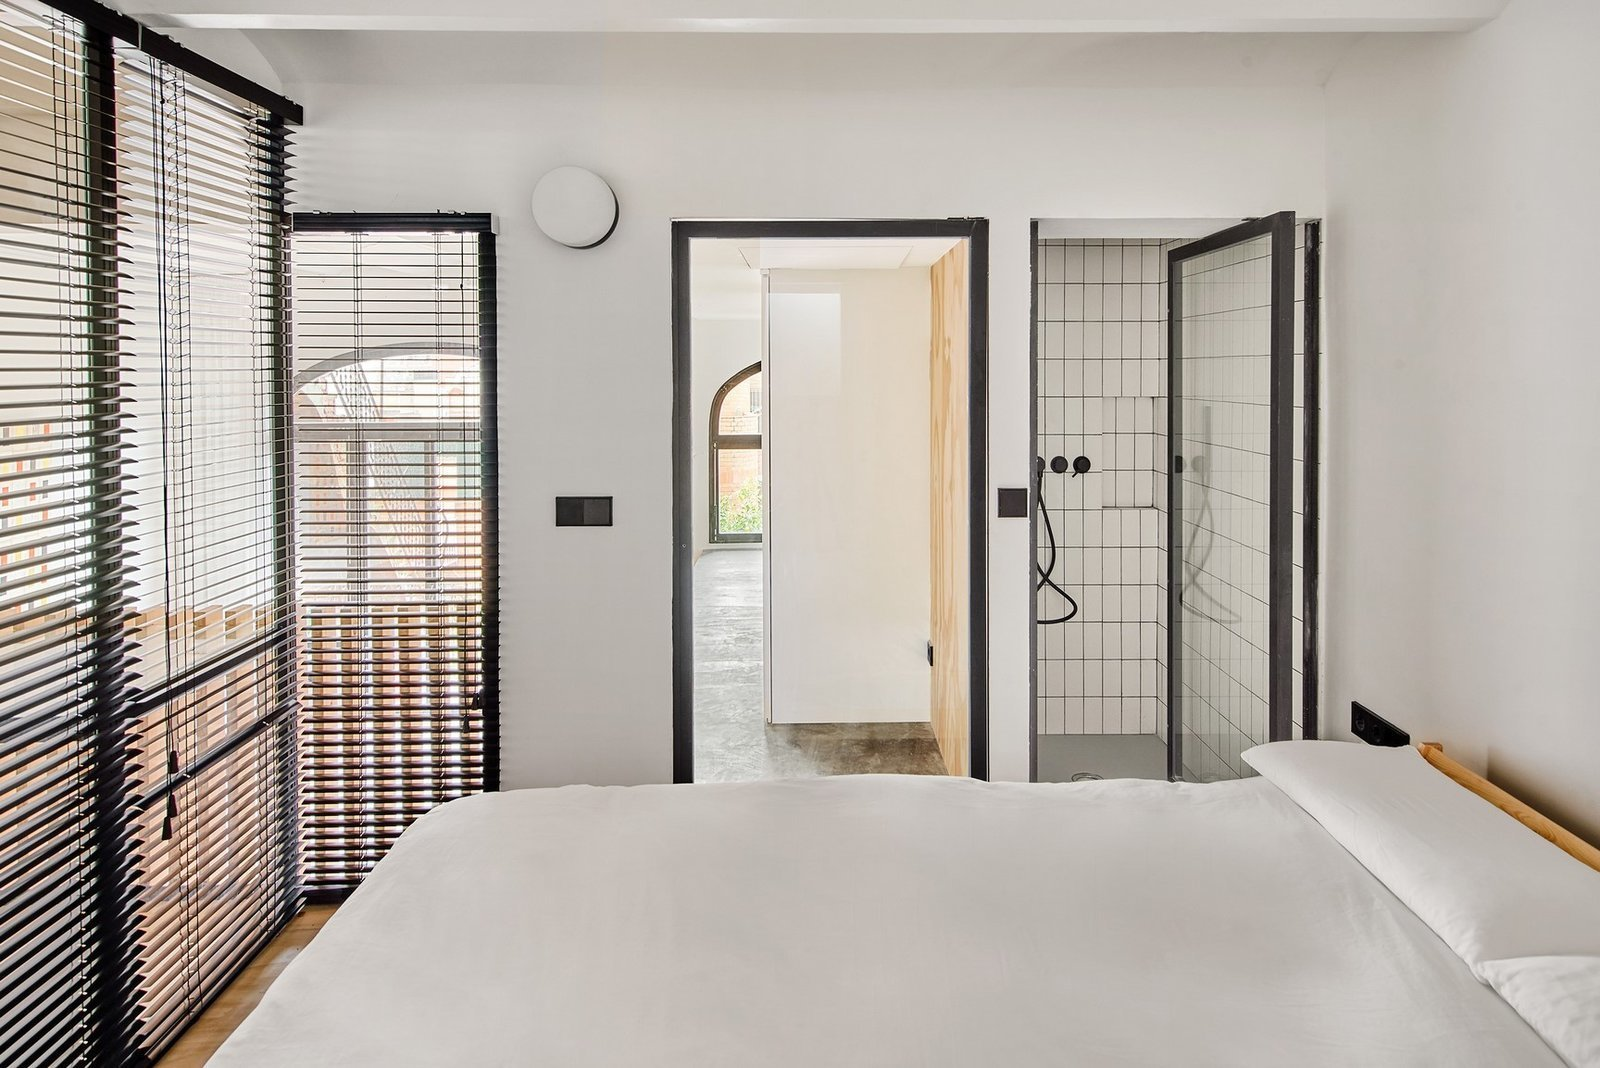 Bedroom, Accent Lighting, Wall Lighting, Bed, and Medium Hardwood Floor  Photo 11 of 15 in A Renovation Turns a Once-Abandoned Barcelona Building Into an Airy Home